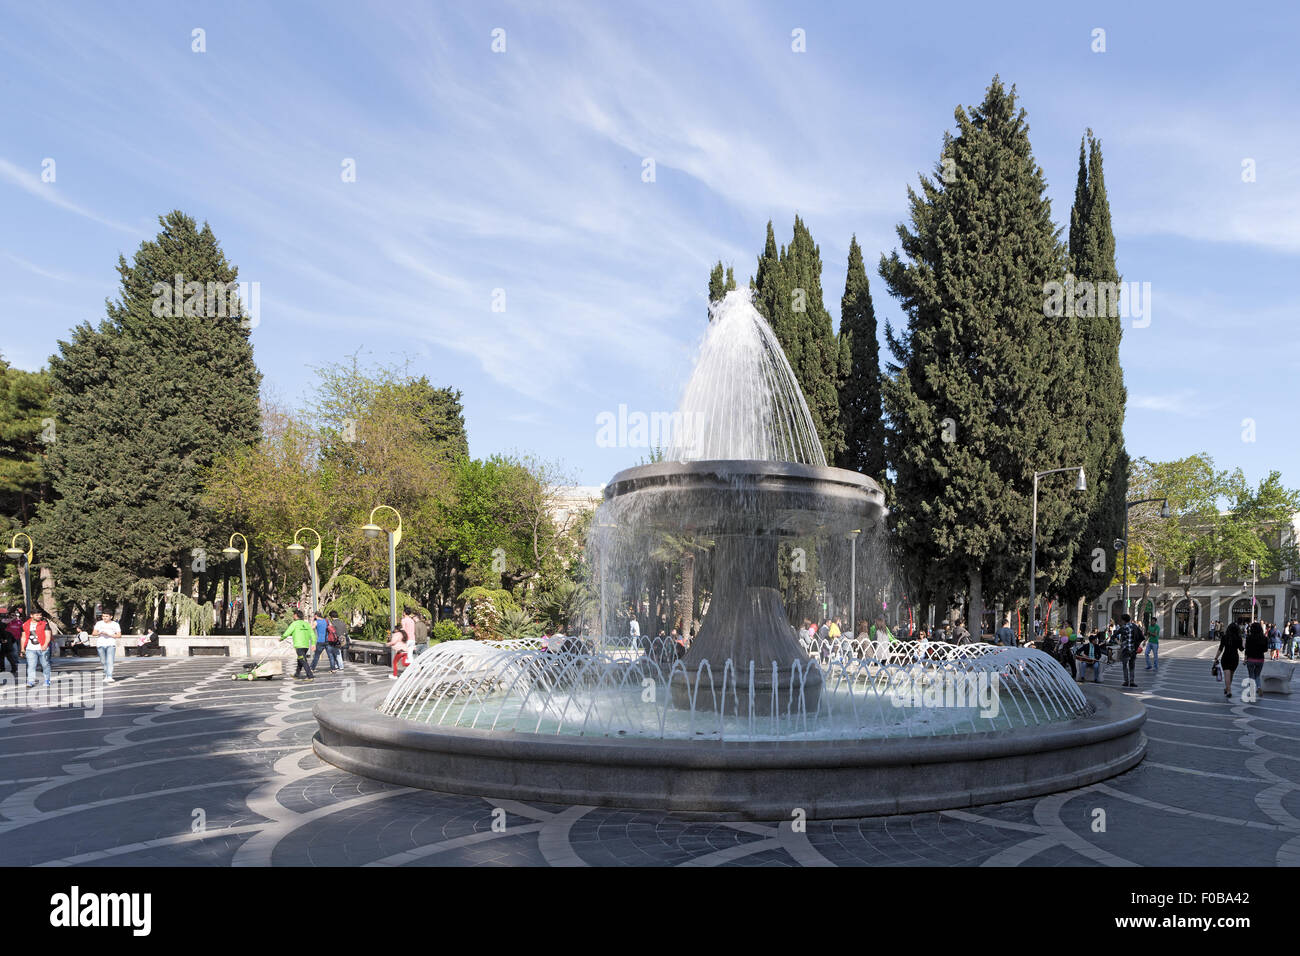 Fountain Square Baku Azerbaijan Stock Photo